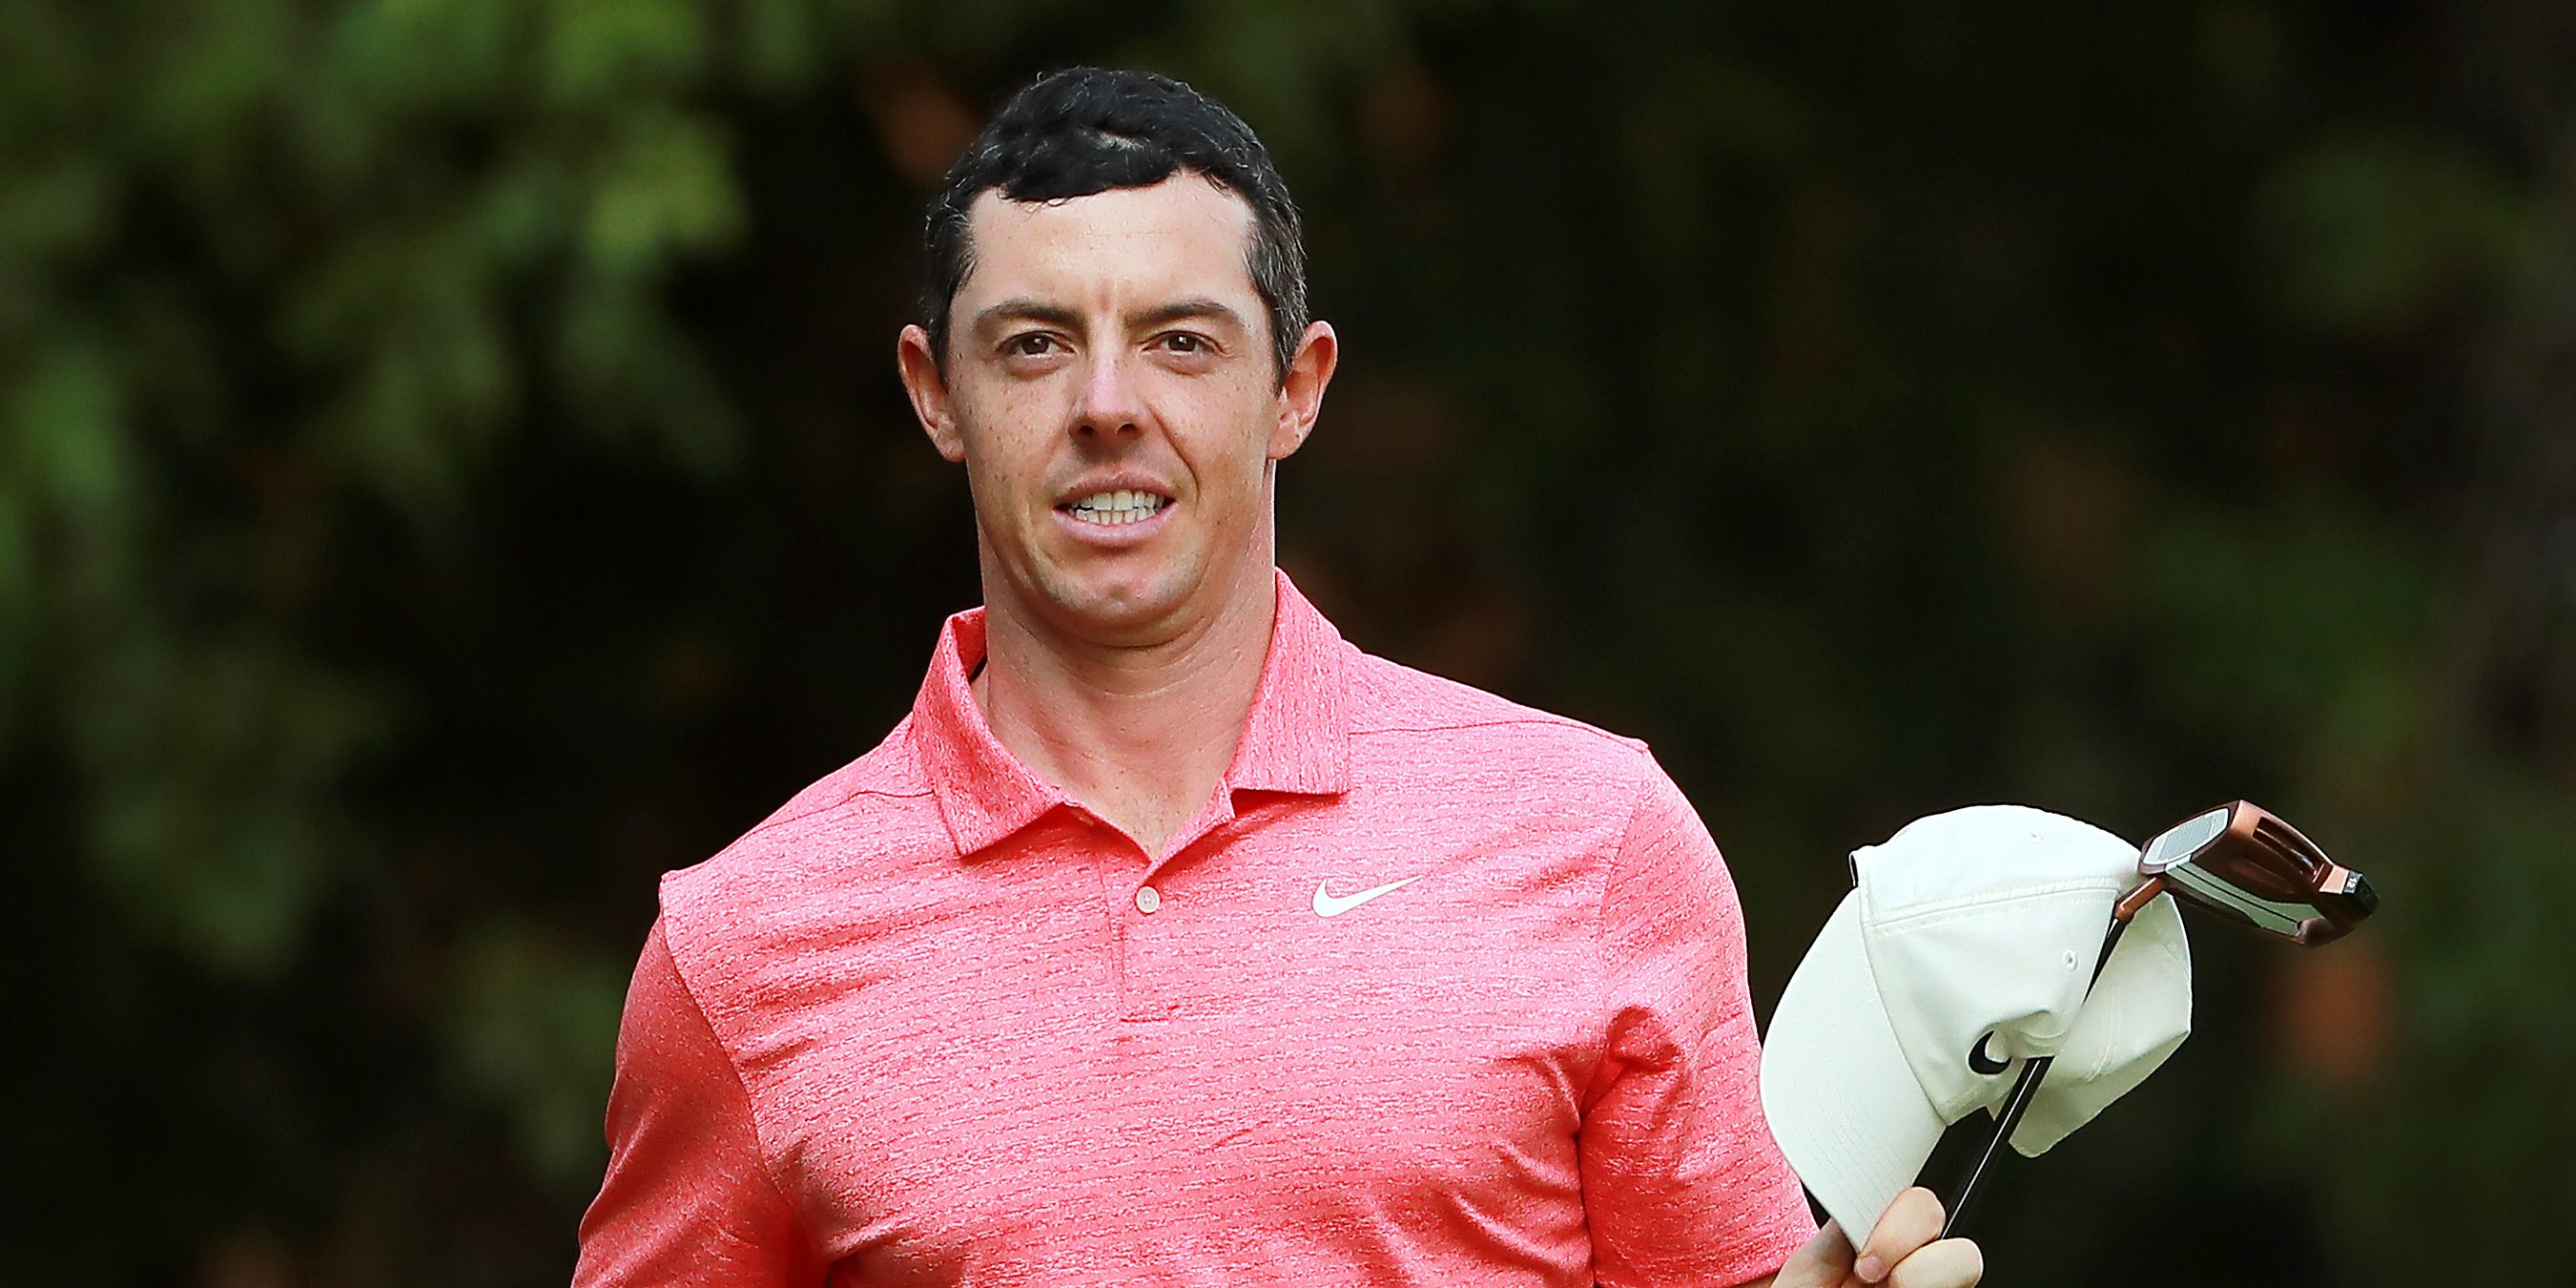 MEXICO CITY, MEXICO - FEBRUARY 24: Rory McIlroy of Northern Ireland reacts after finishing on the 18th green during the final round of World Golf Championships-Mexico Championship at Club de Golf Chapultepec on February 24, 2019 in Mexico City, Mexico. (Photo by Hector Vivas/Getty Images)